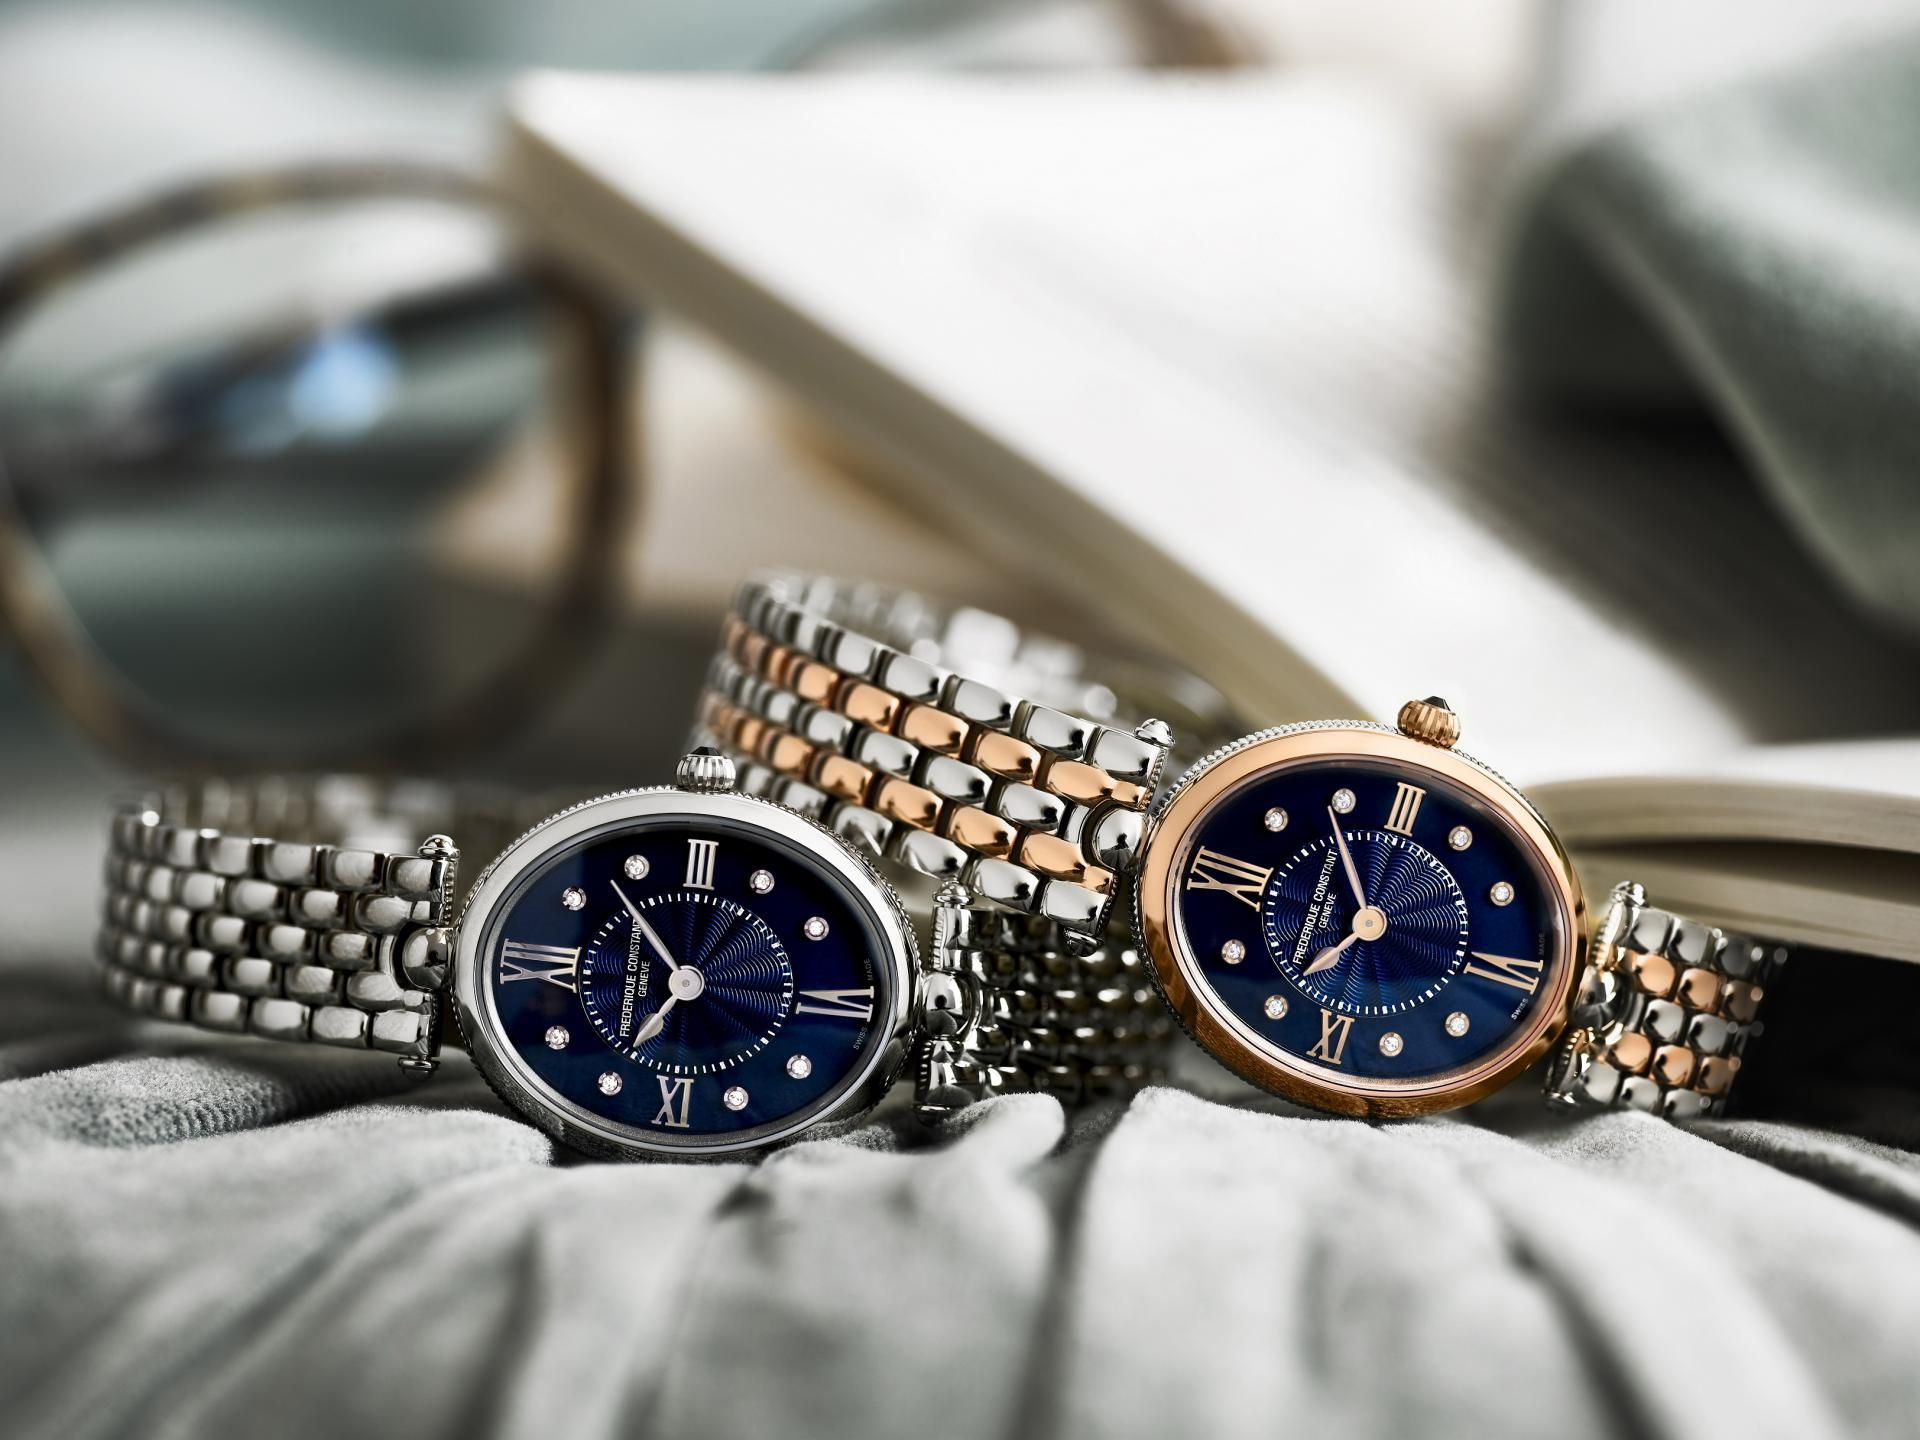 Baselworld 2019: Frédérique Constant Presents Two New 'Art Déco' Watches